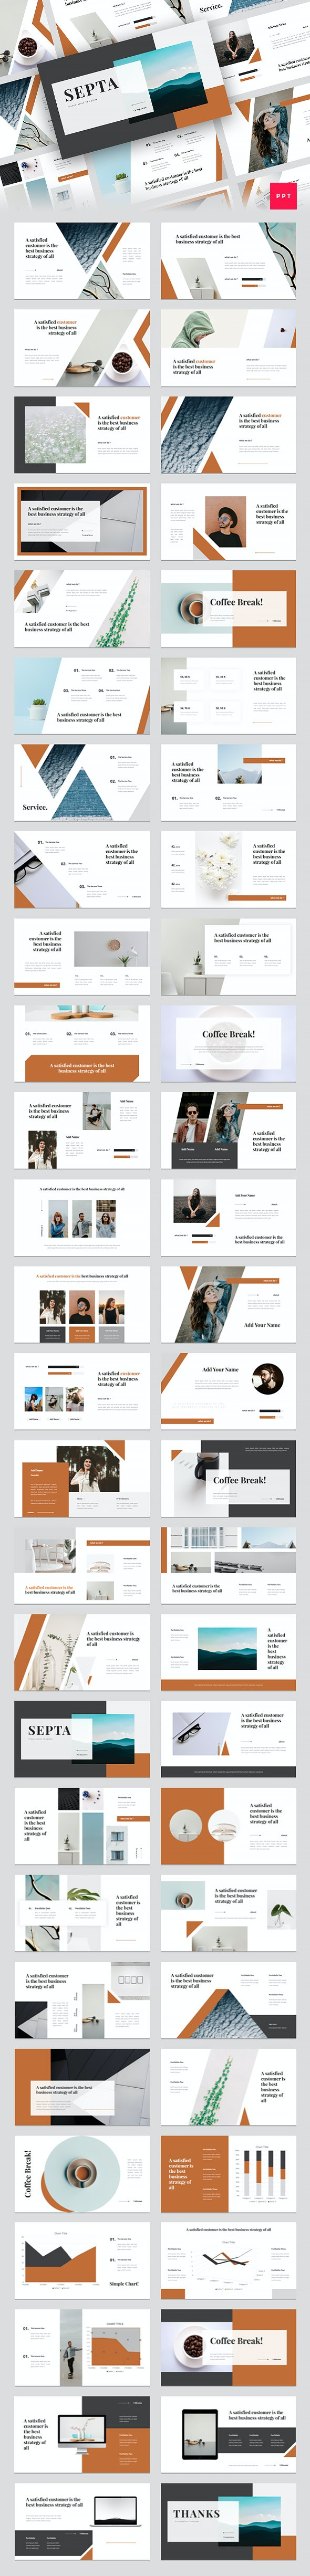 Septa - Clean PowerPoint Template - Creative PowerPoint Templates